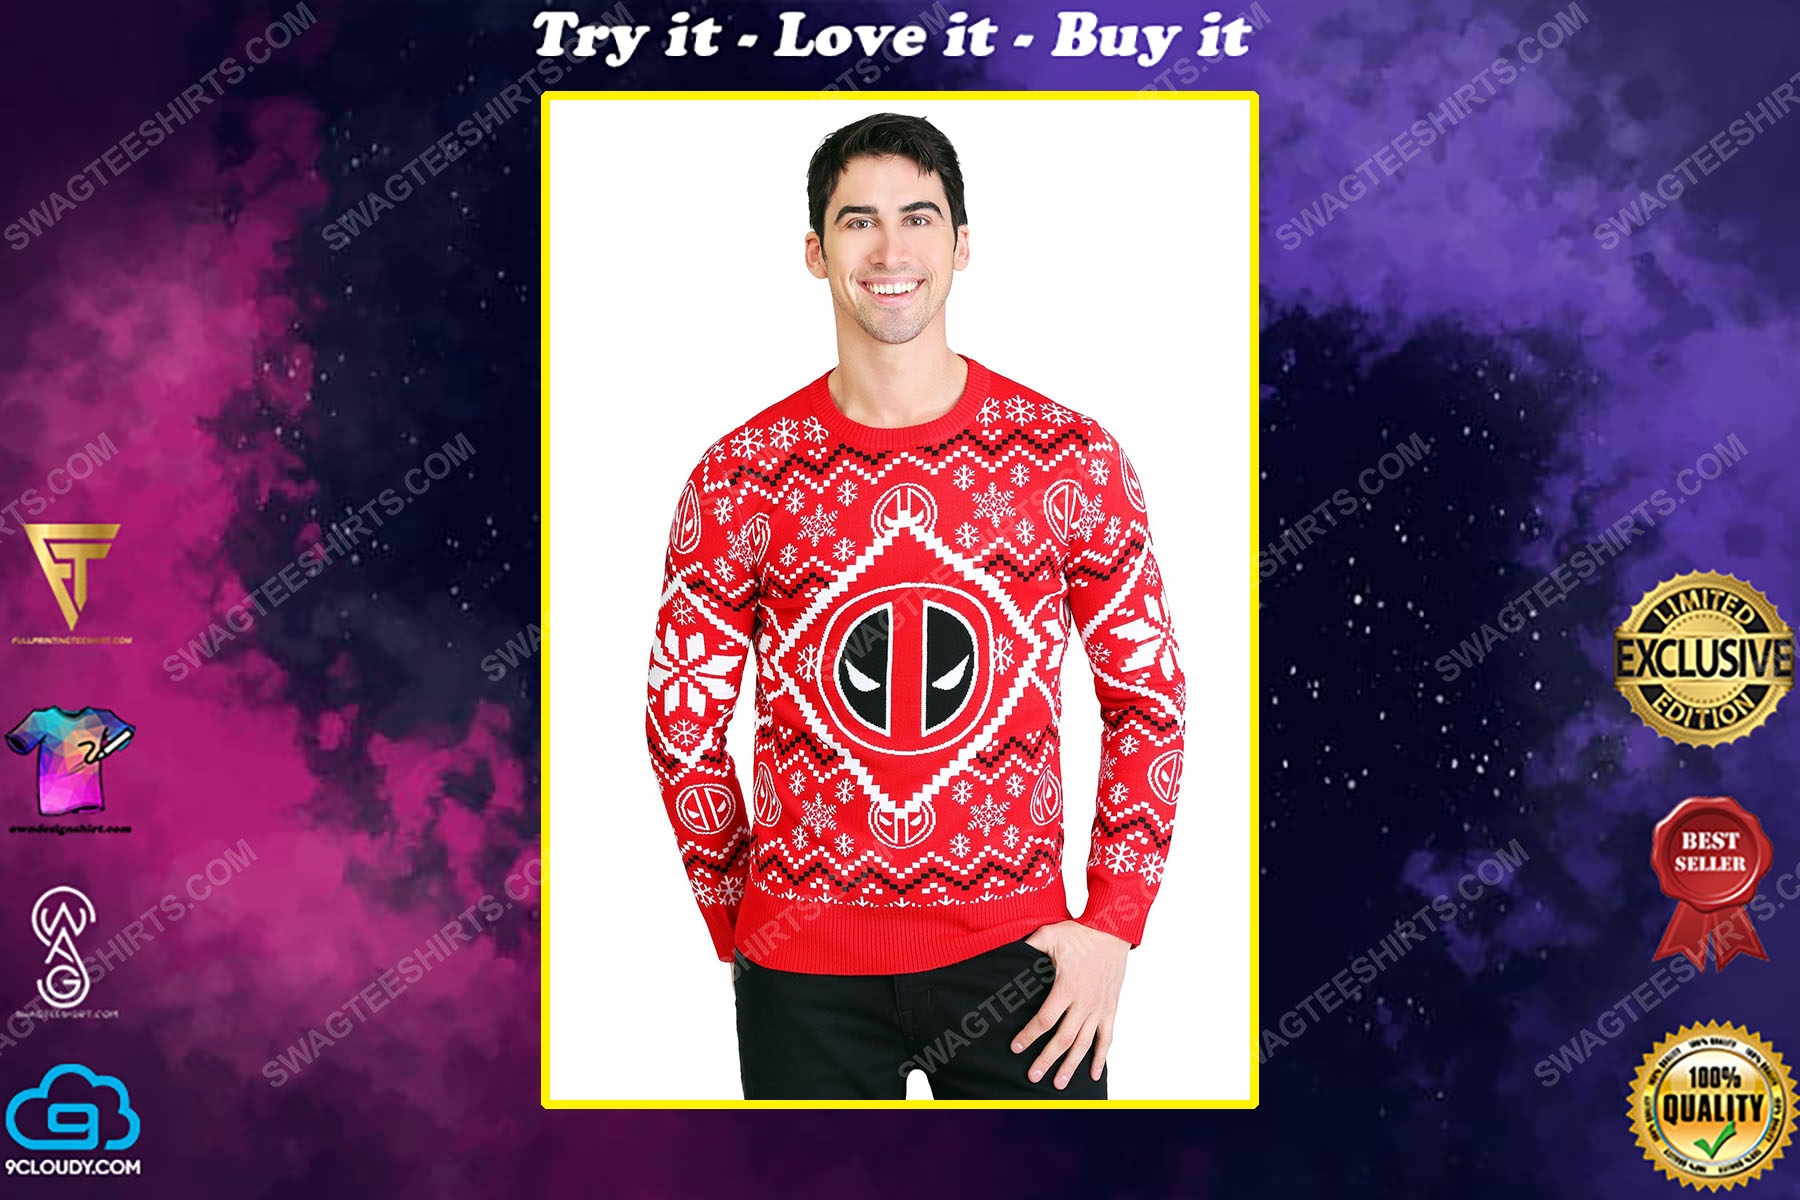 The deadpool icon full print ugly christmas sweater